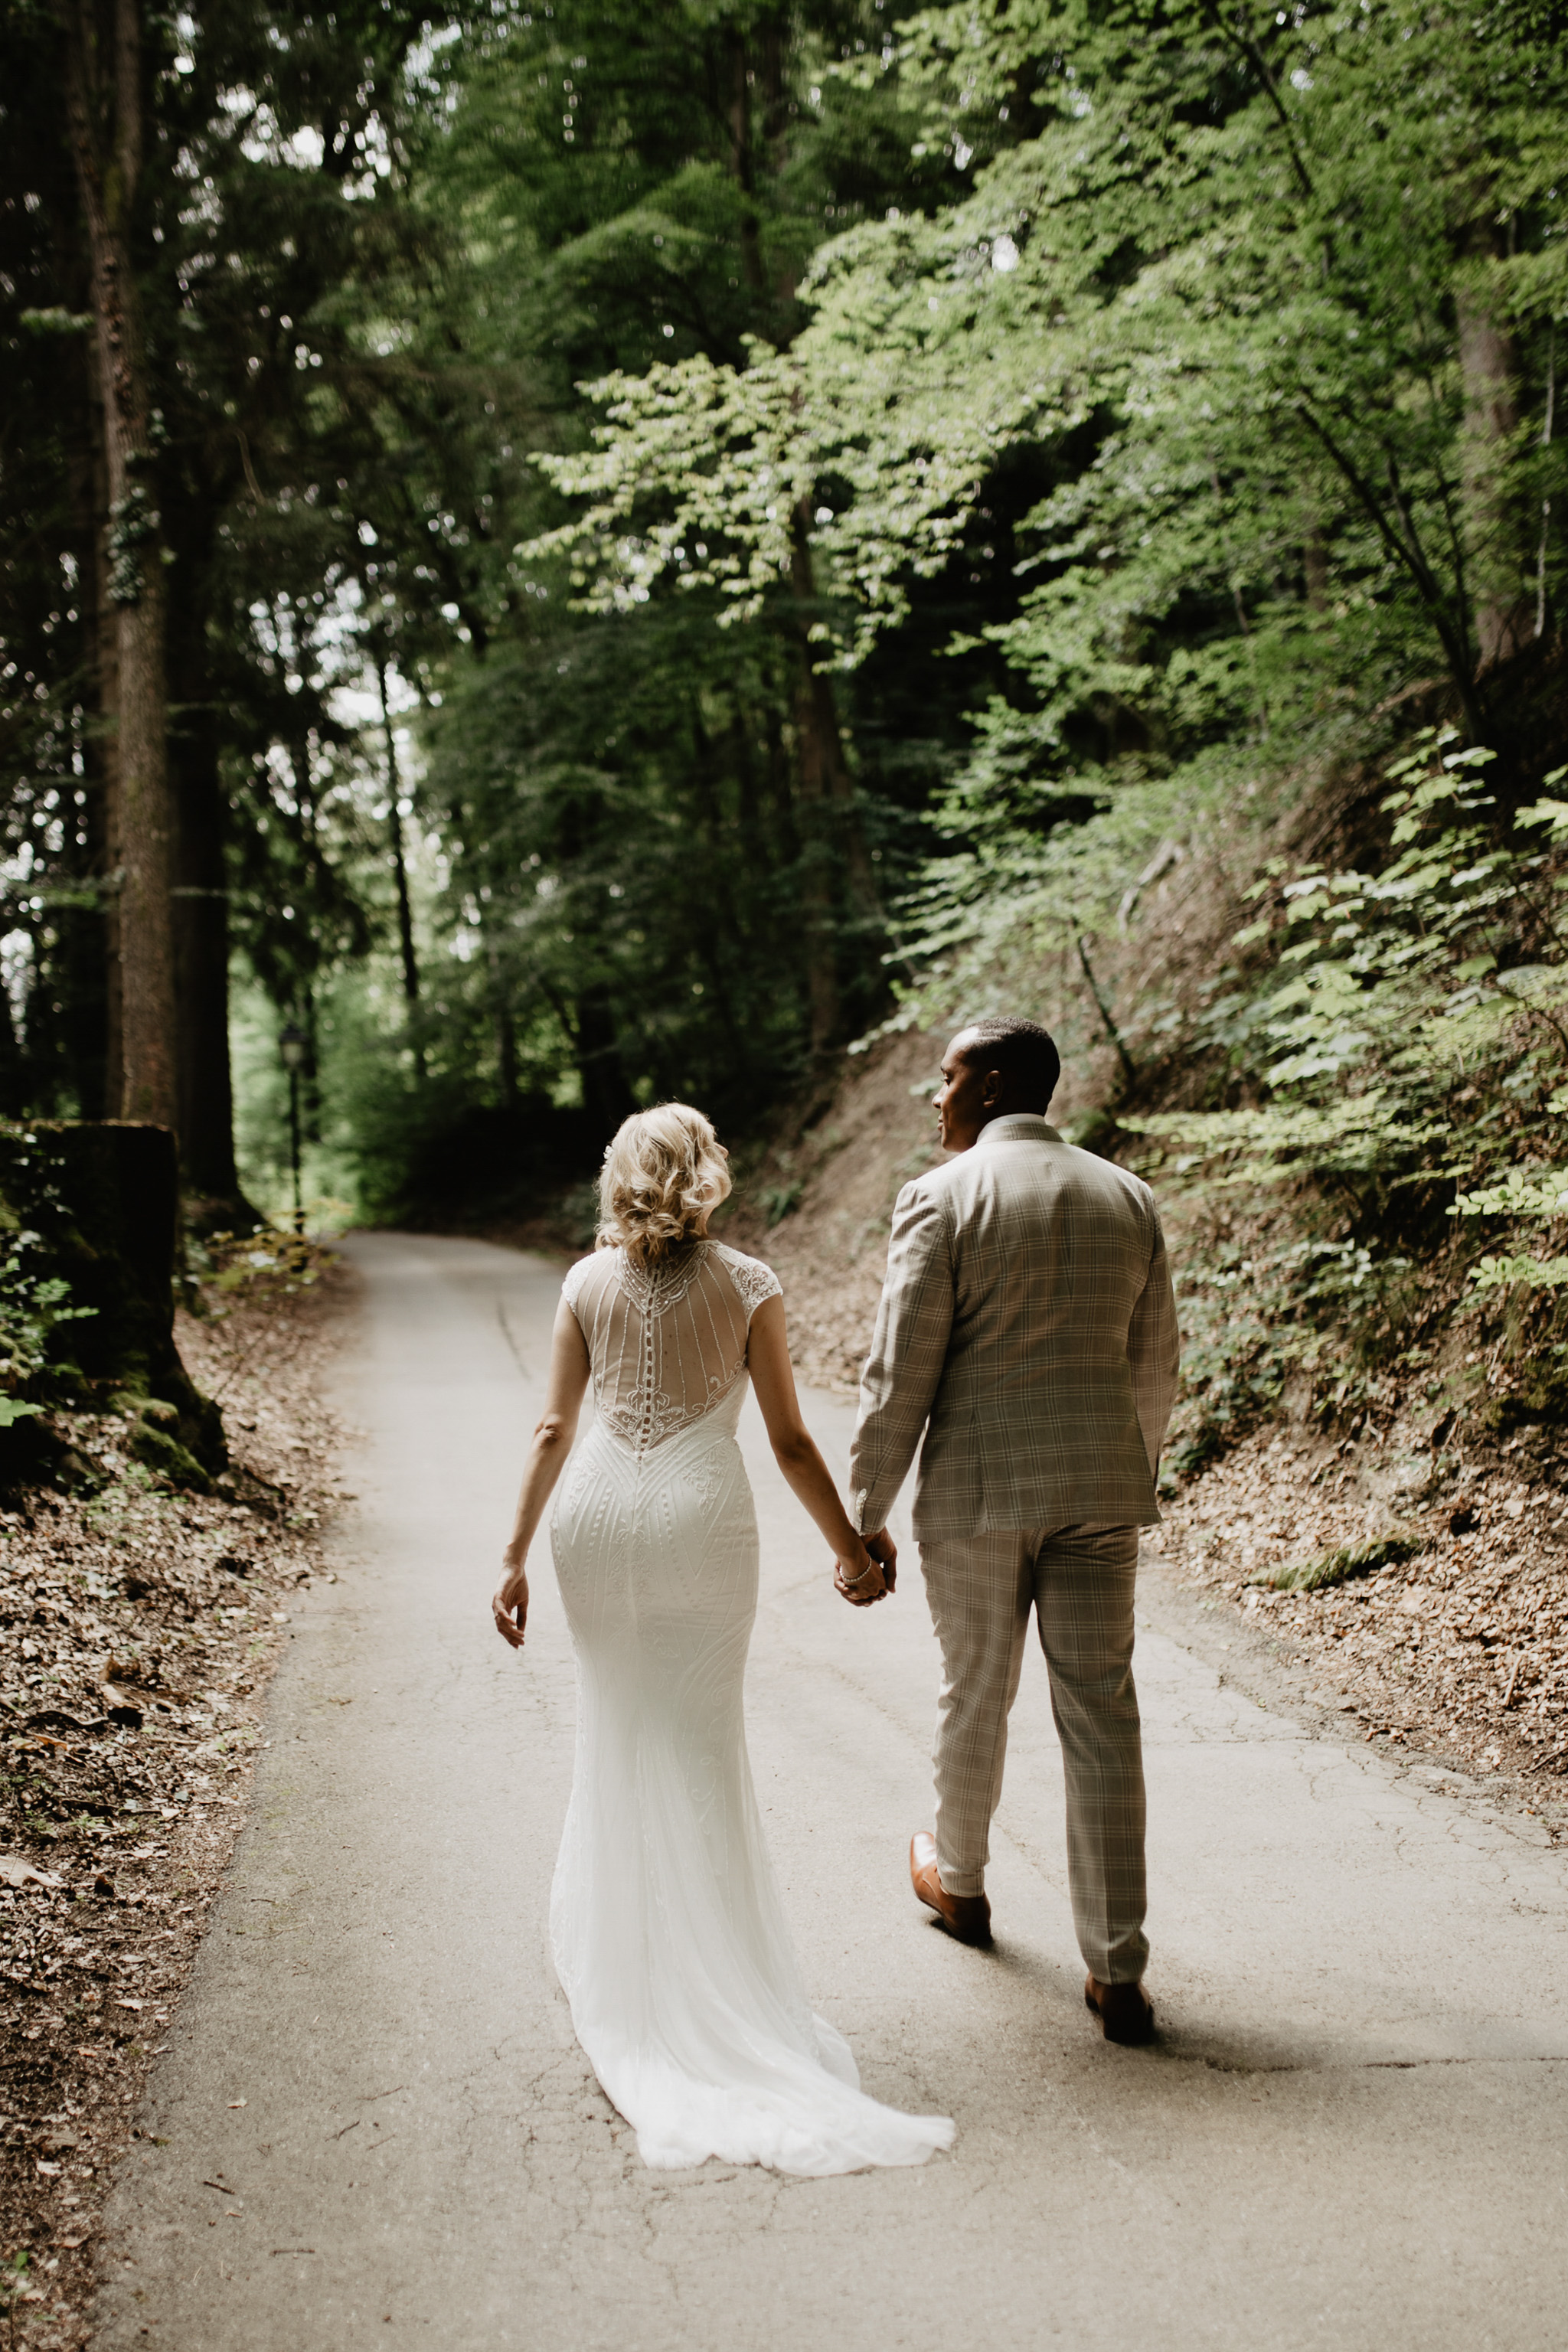 Destination-Wedding-Ardennes-Elke-Smit-Photography-1